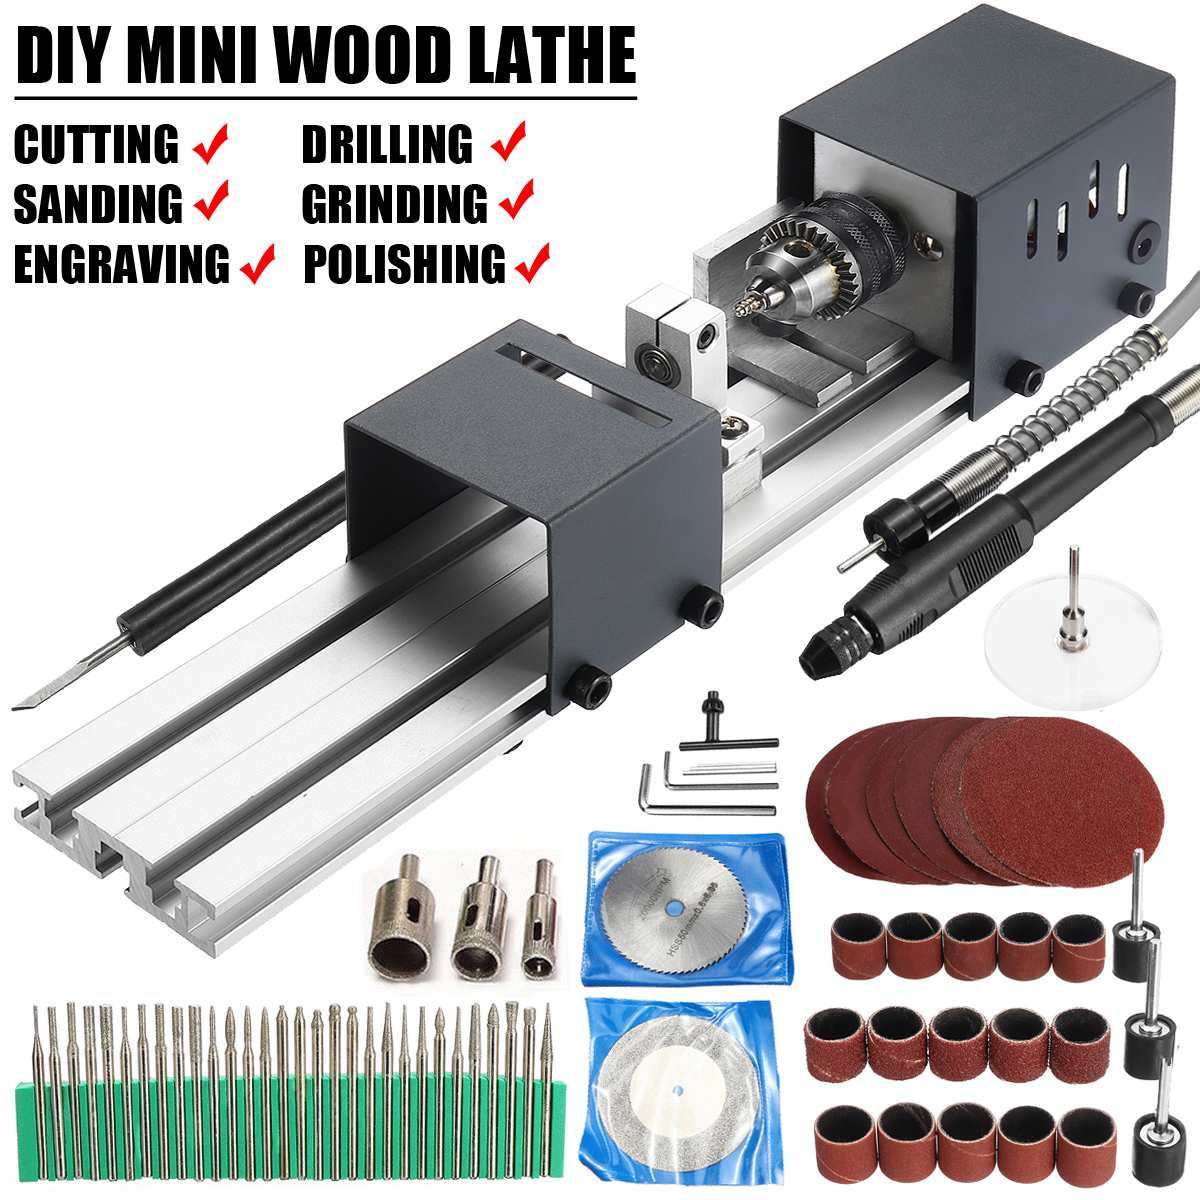 24V 80W Mini Lathe Beads Machine Polisher Table Saw Mini DIY Woodworking Lathe Rotary Tool Kit Accessory